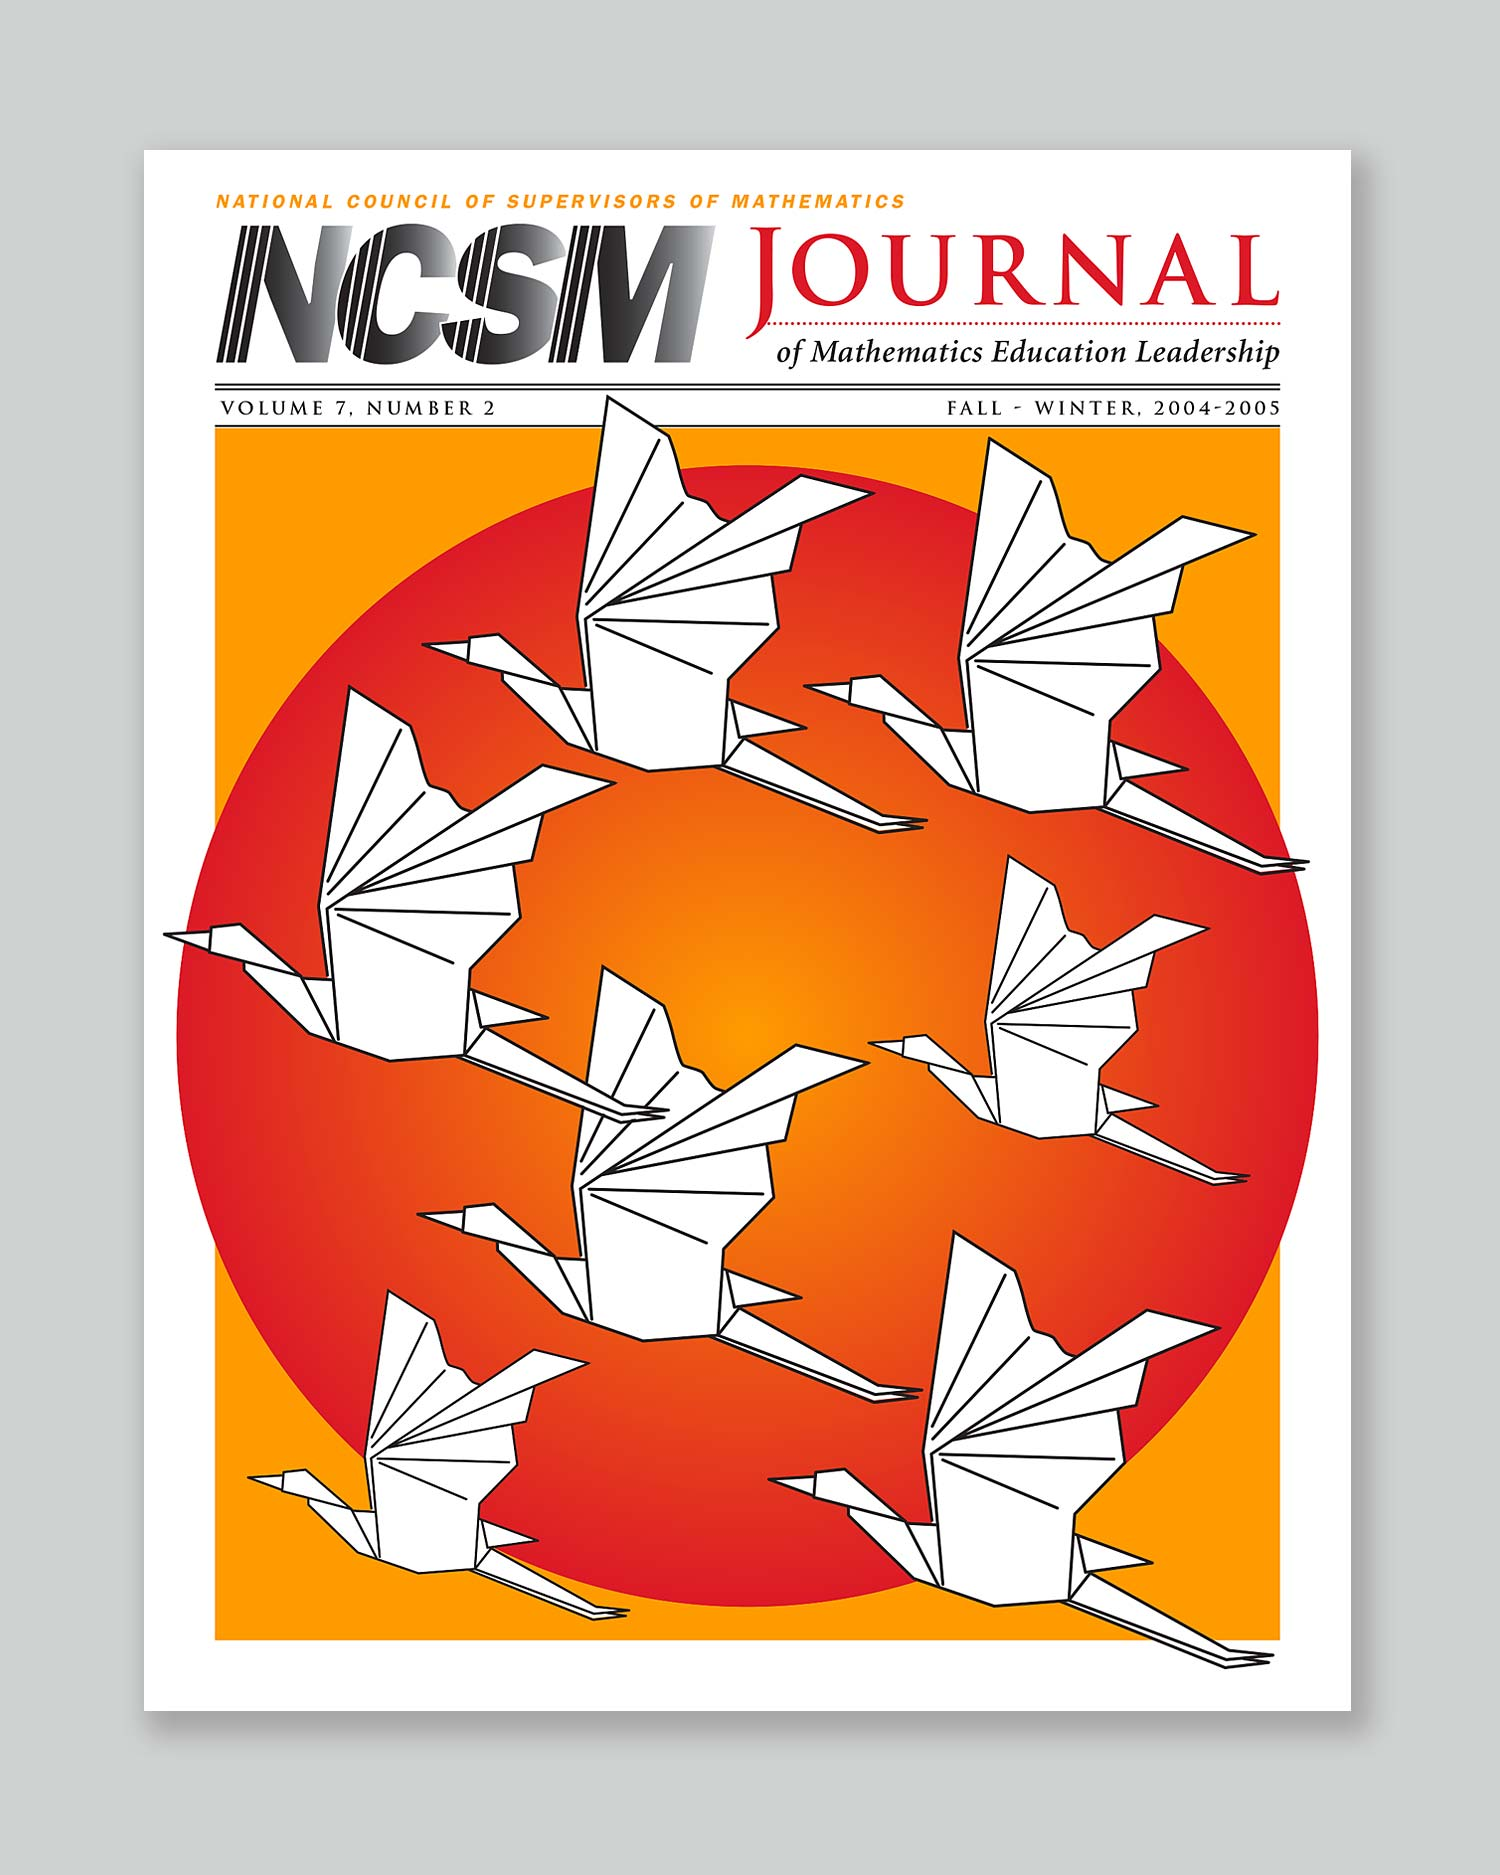 Bonnie Katz Design, NCSM Journal cover